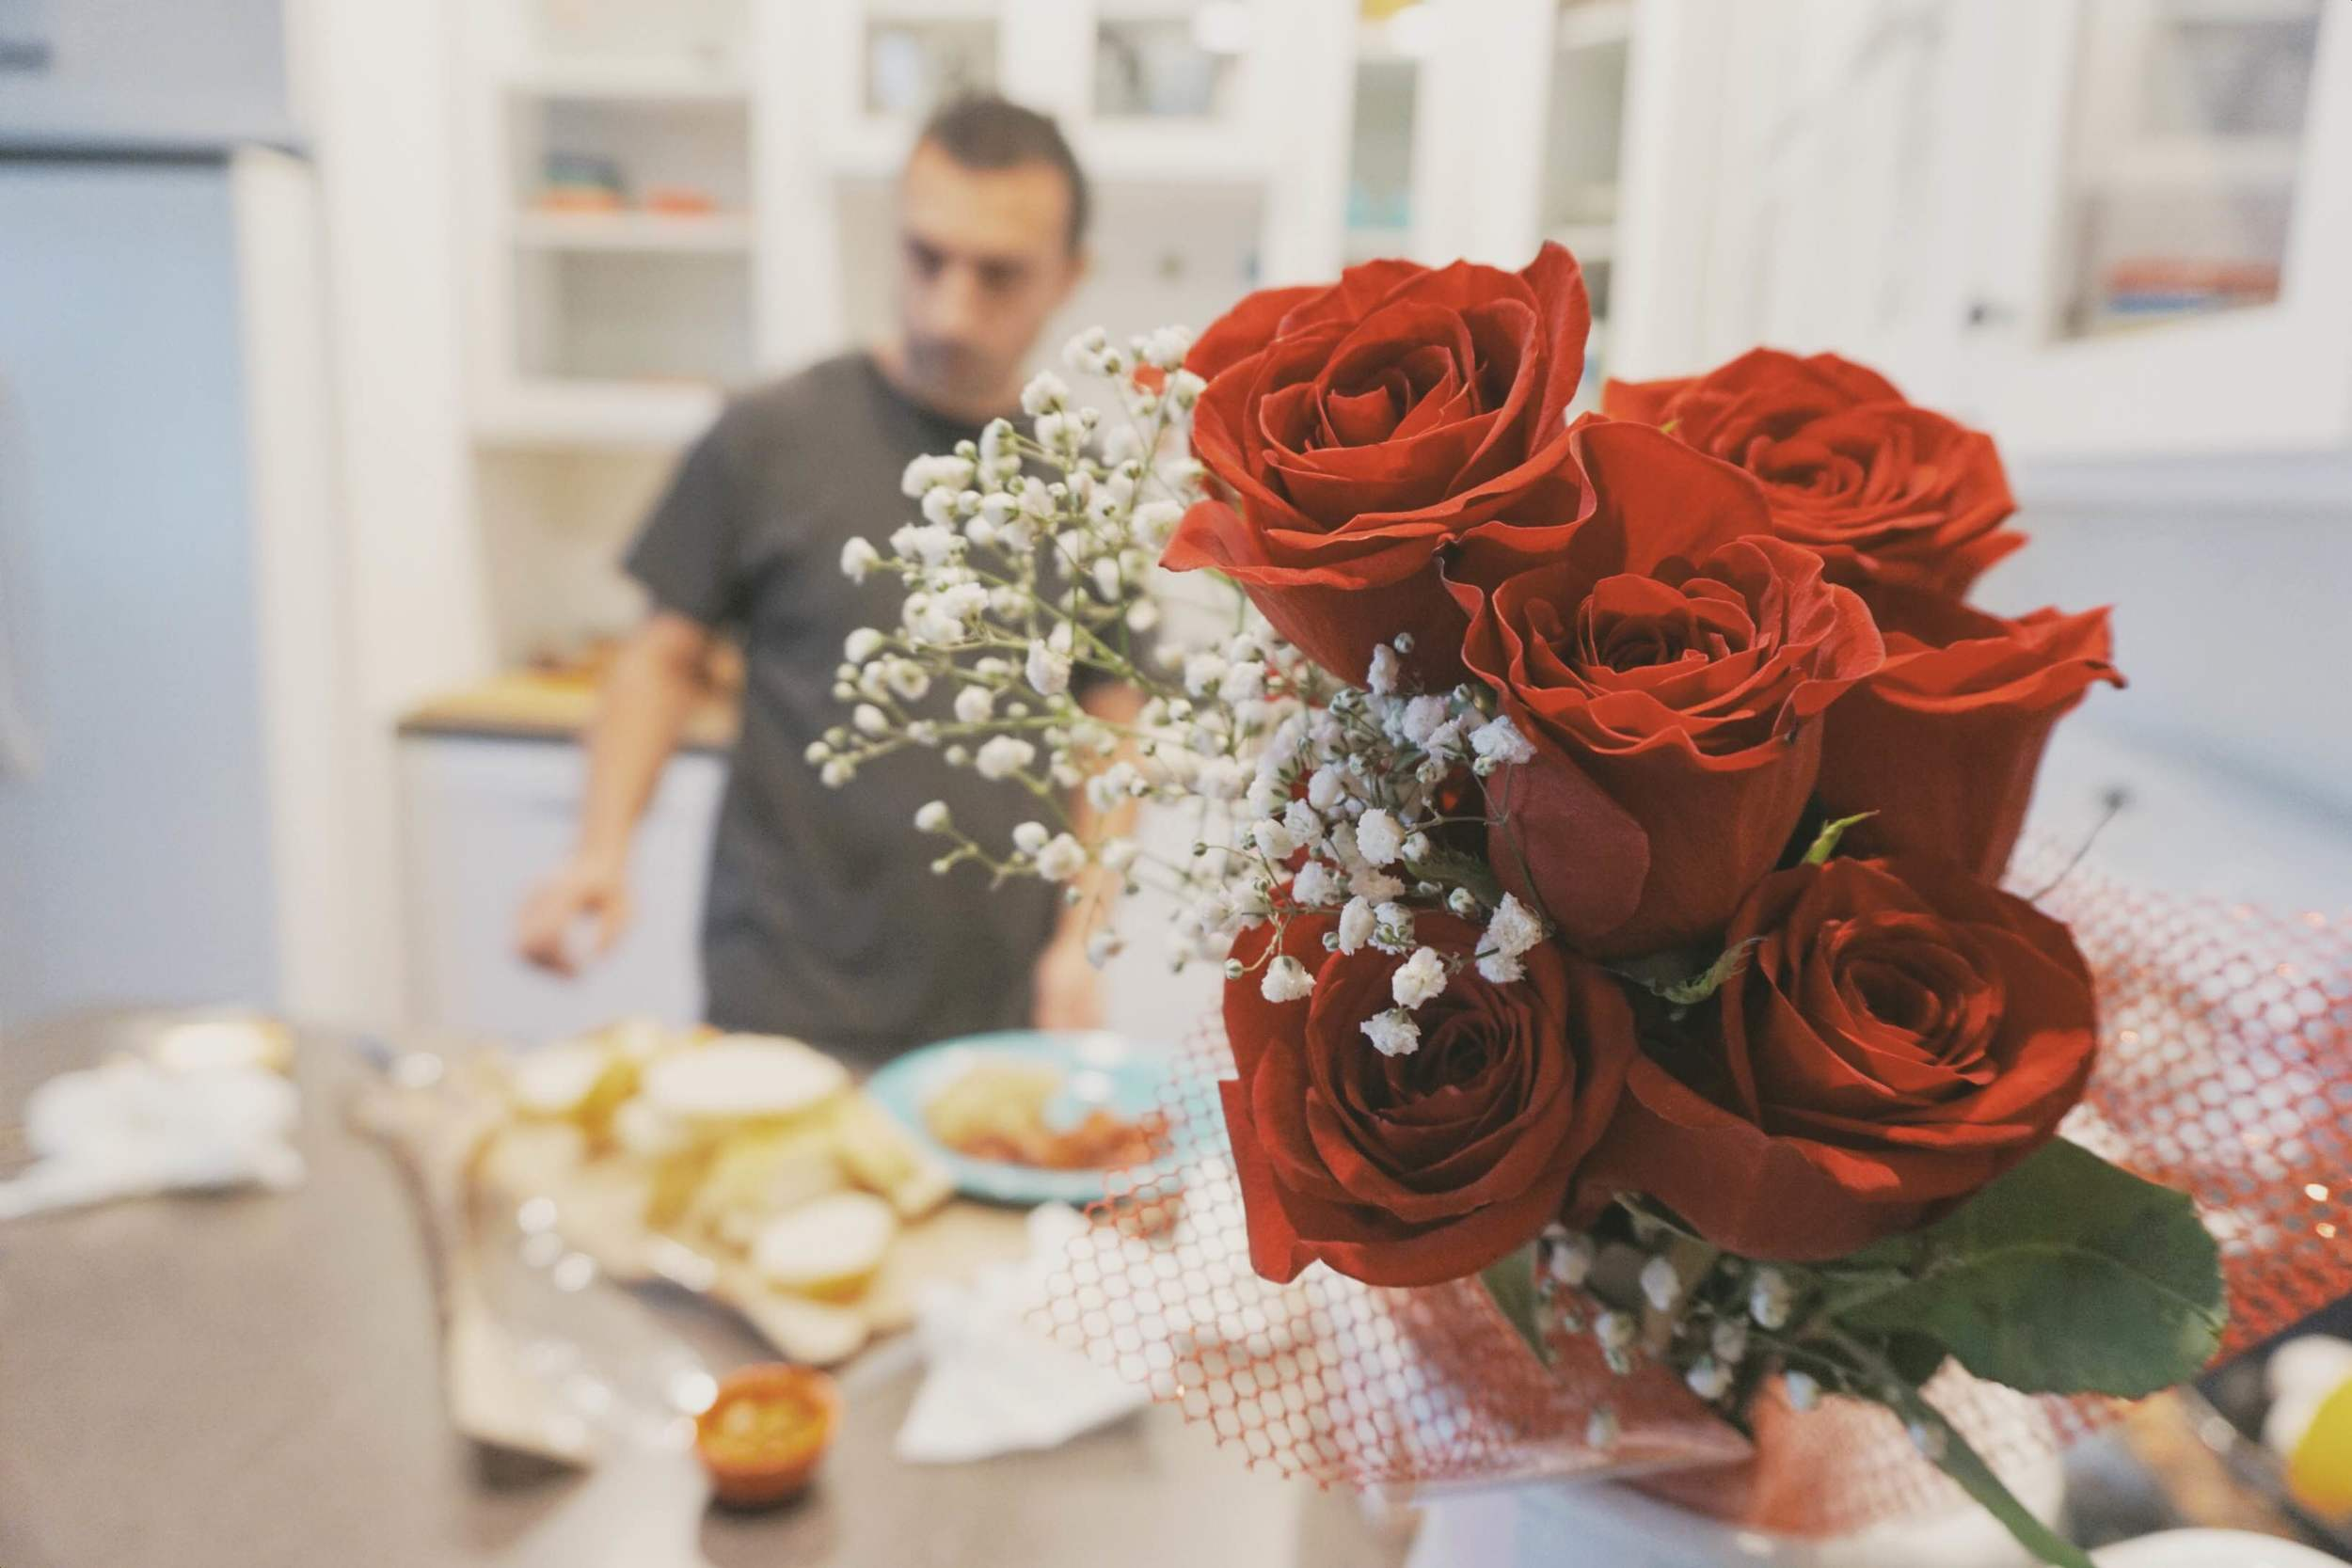 If flowers are ever involved, red roses have always been our tradition.